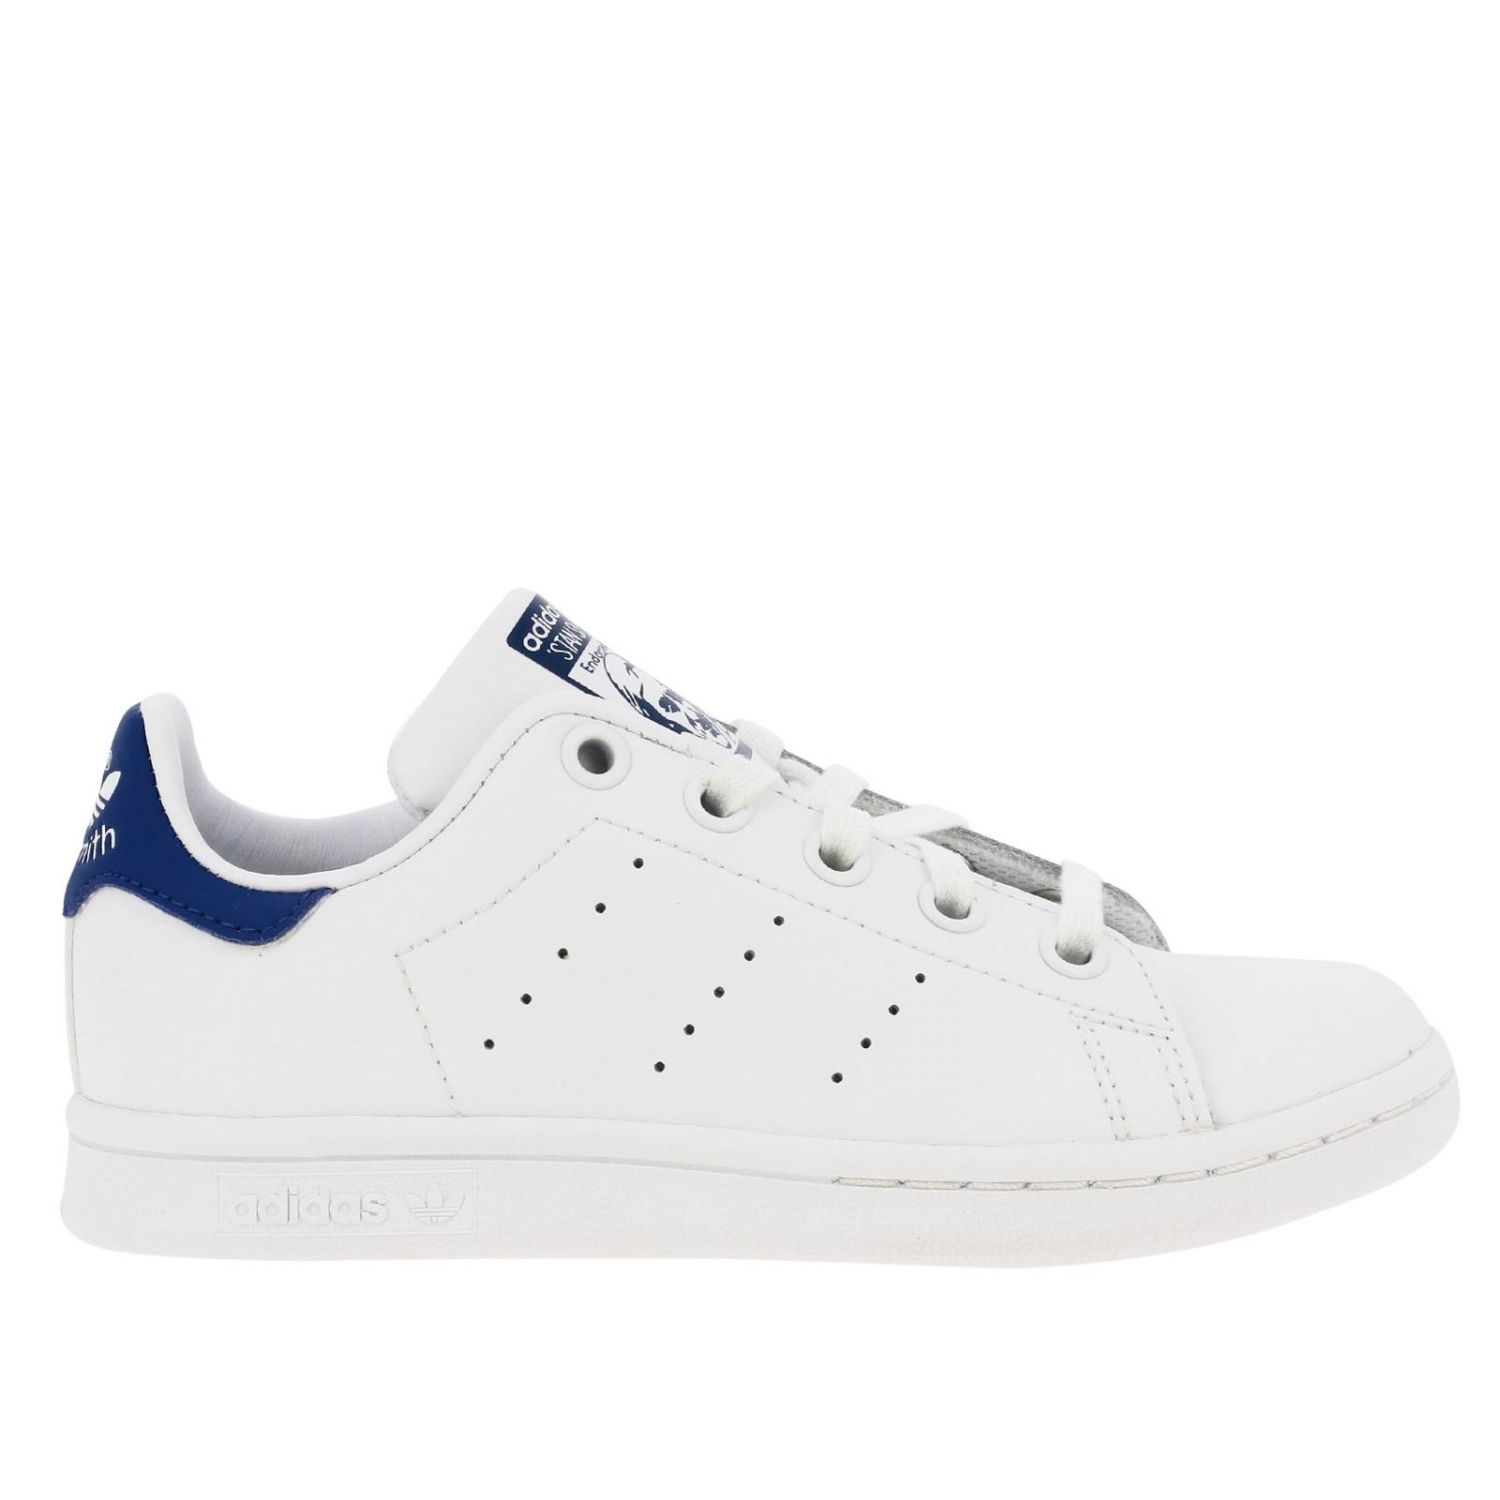 Shoes Adidas Originals: Stan Smith C Adidas Originals Sneakers in leather with contrasting heel white 1